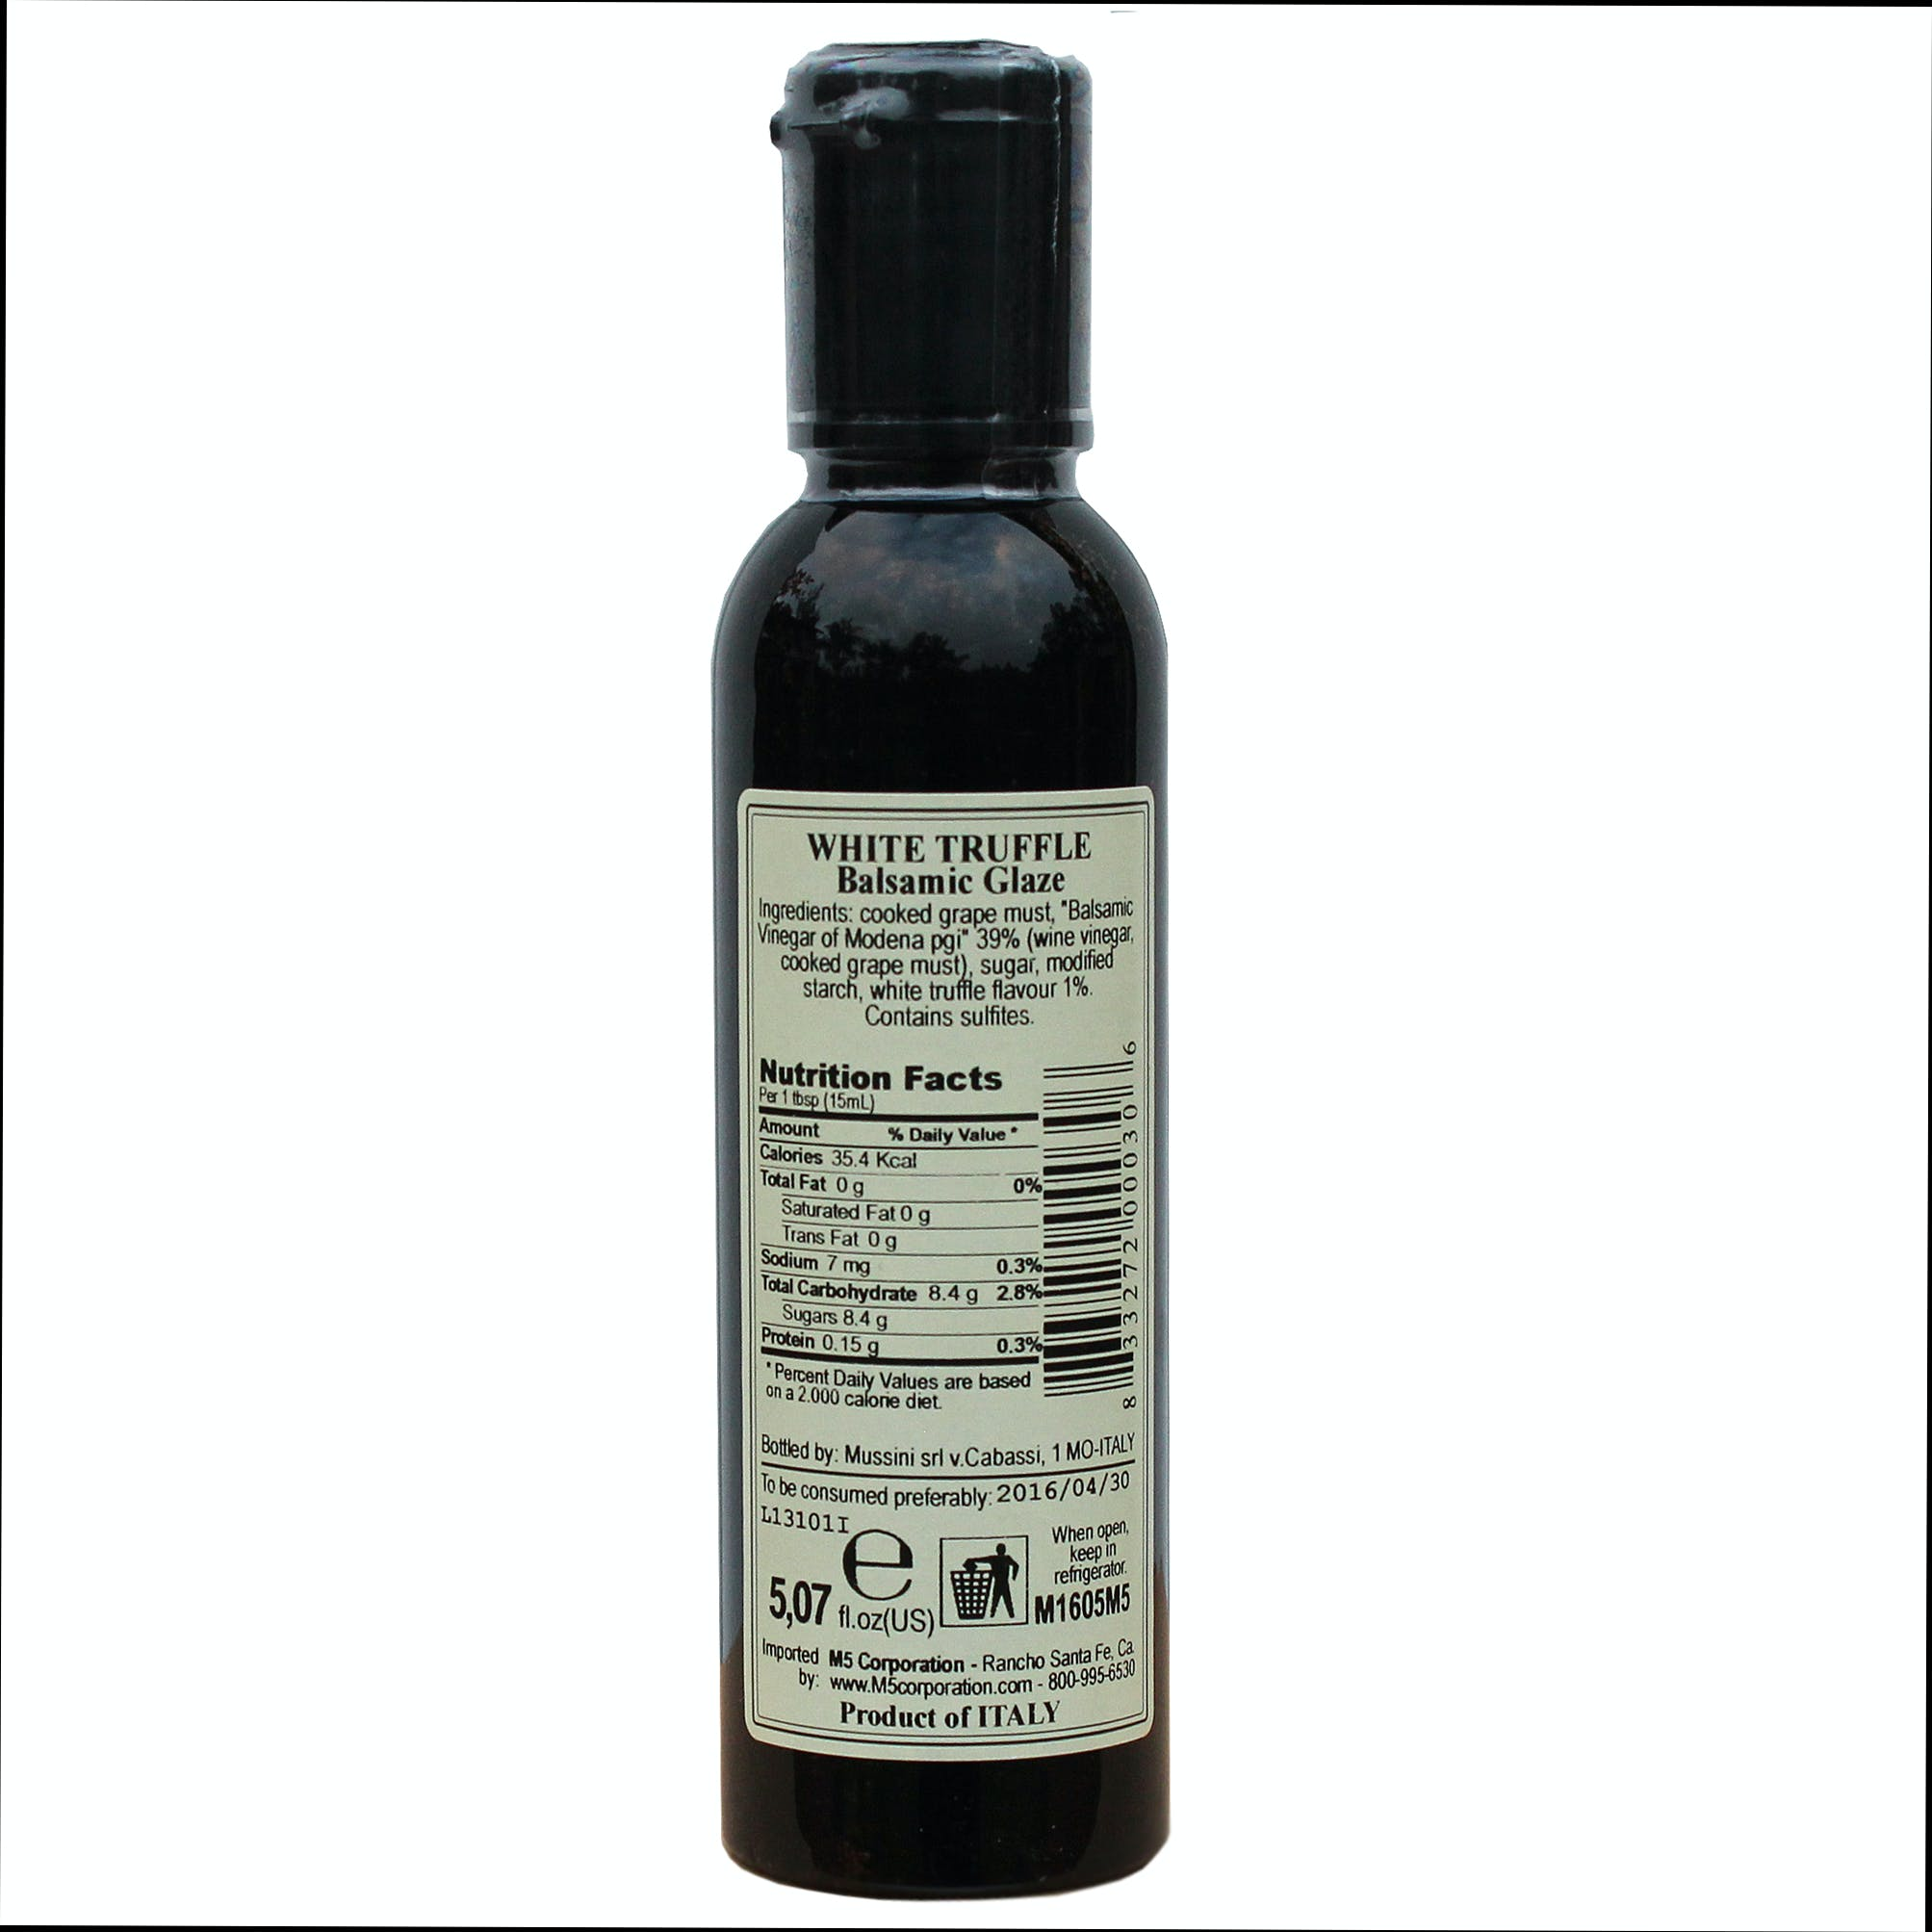 Italian Truffle Balsamic Glazes From Mussini, 5.1 Ounces - sold by M5 Corporation